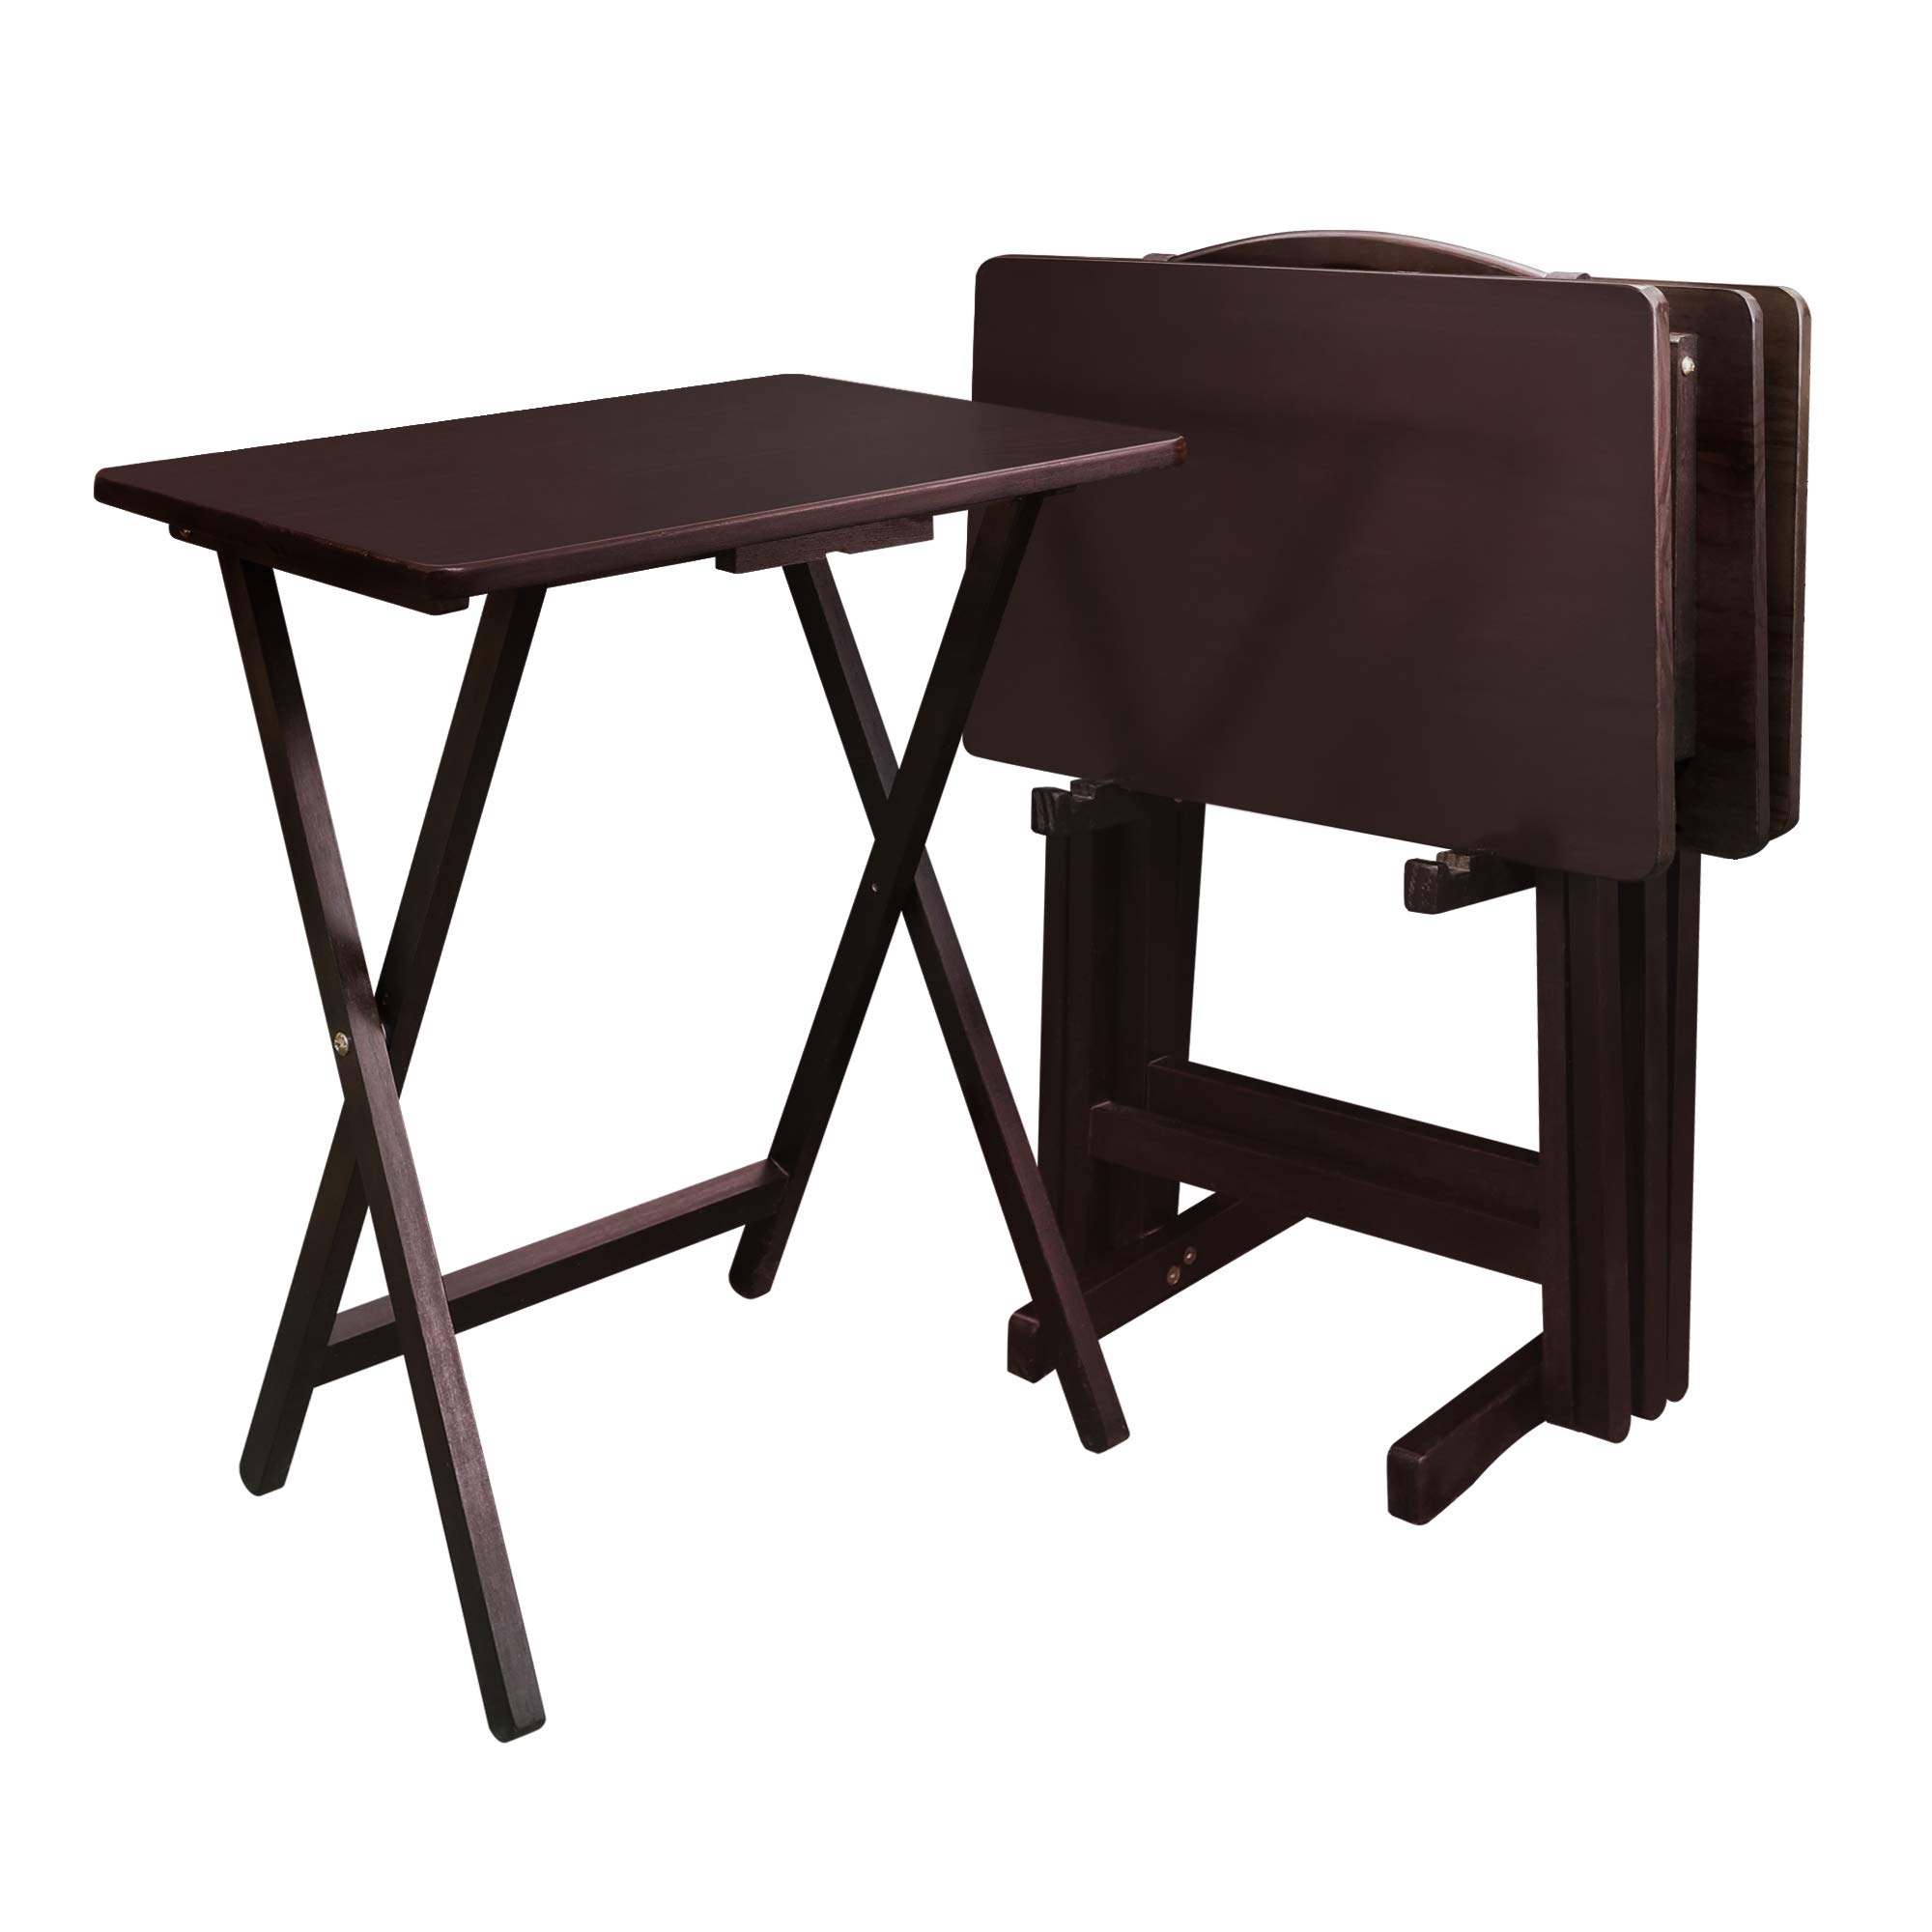 Casual Home 660-44 5 Piece Tray Table Set, Espresso by Casual Home